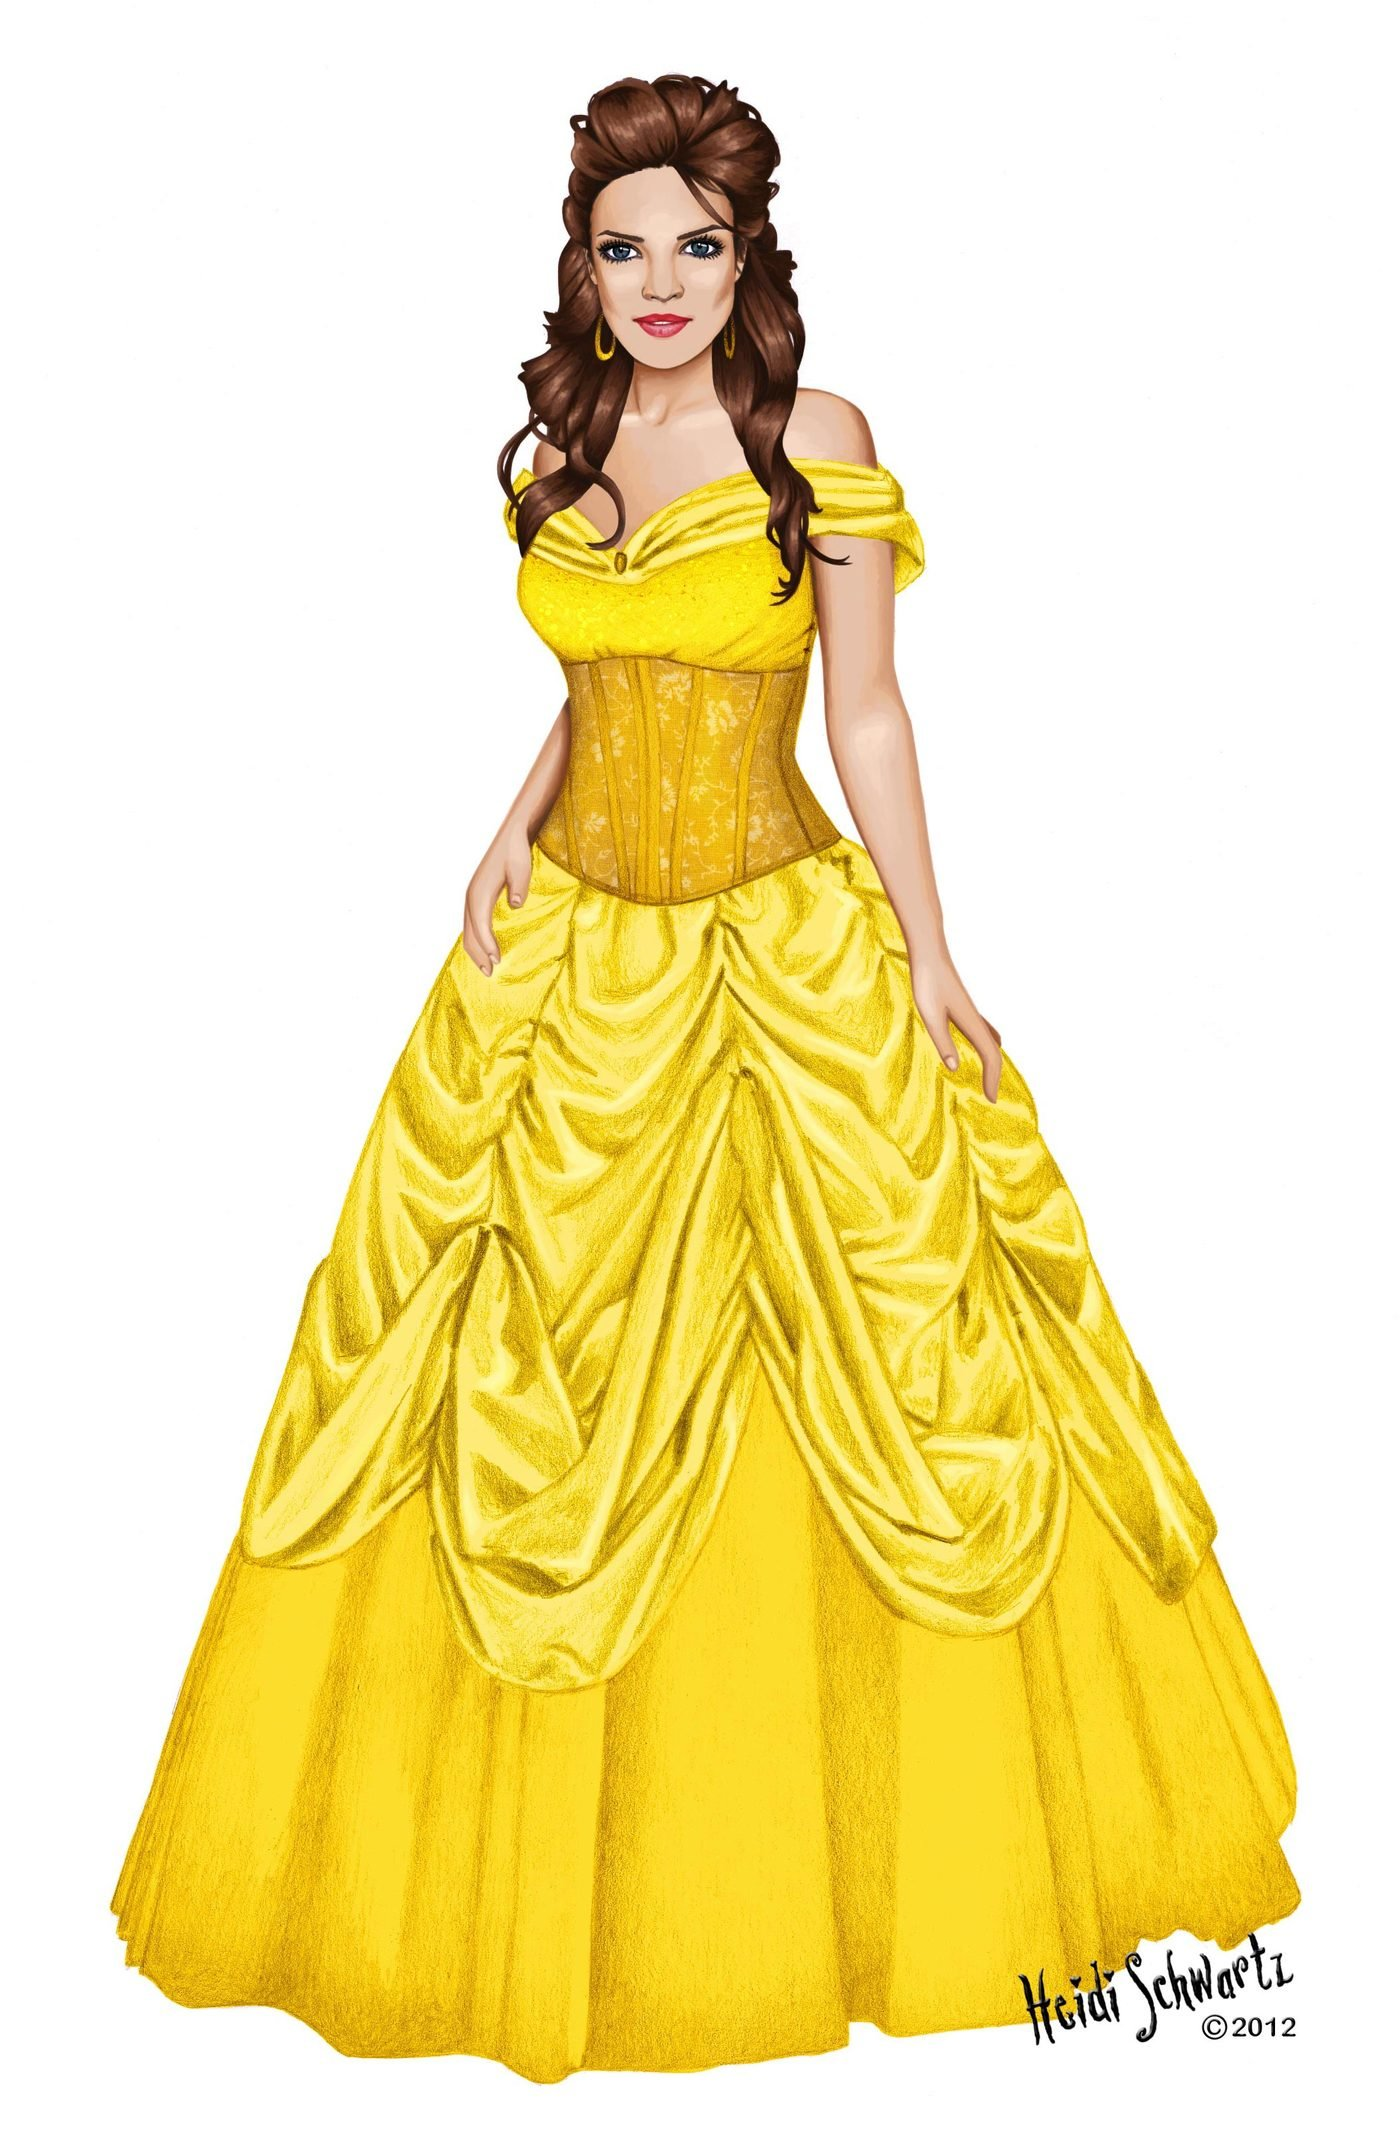 Belle Beauty And The Beast Digital Character Development By Heidi Schwartz At Coroflot